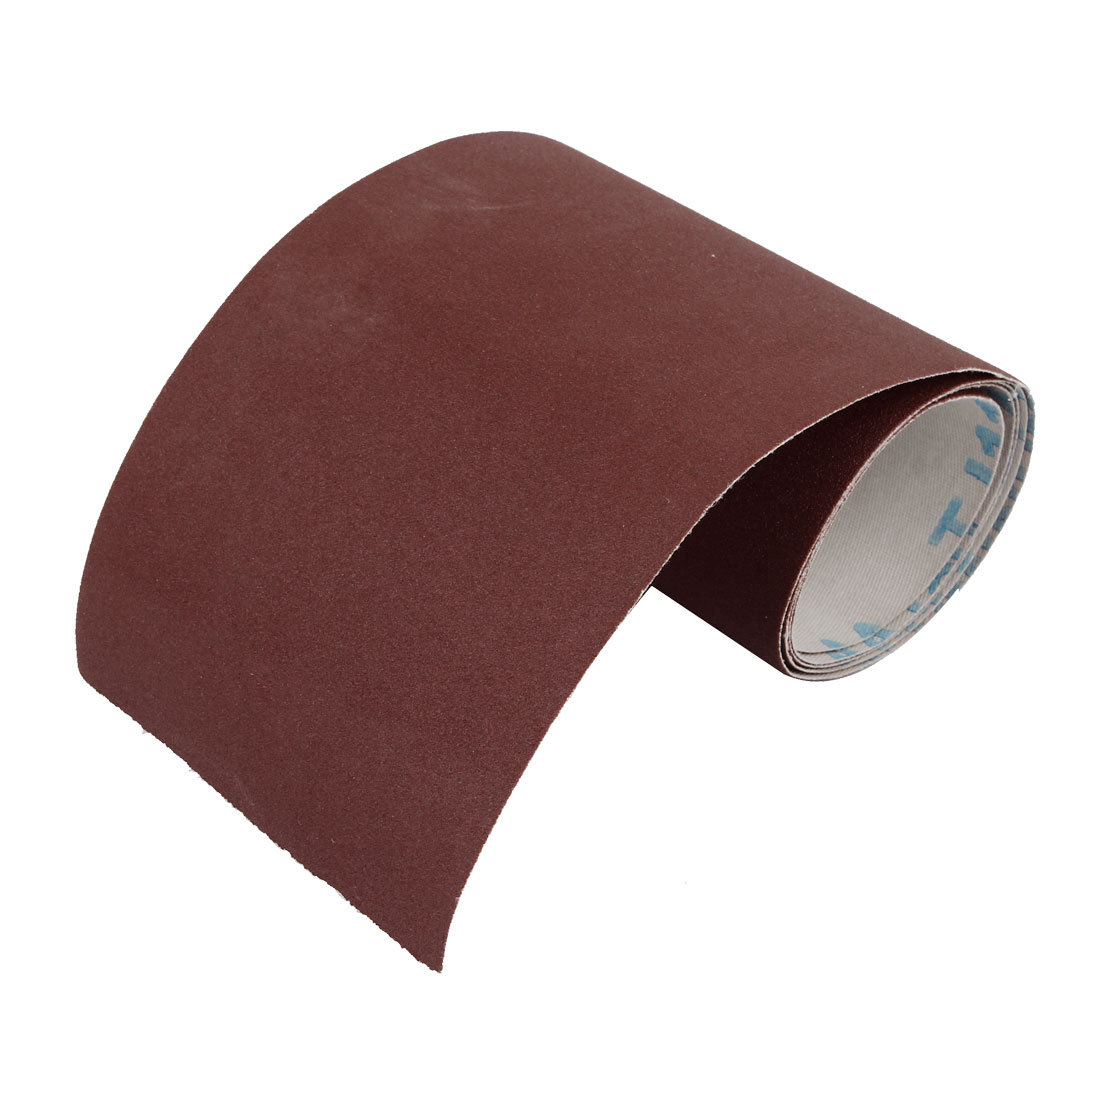 "40"" Long 180 Grit Abrasive Sheet Sanding Belt Sandpaper Sand Sheet"